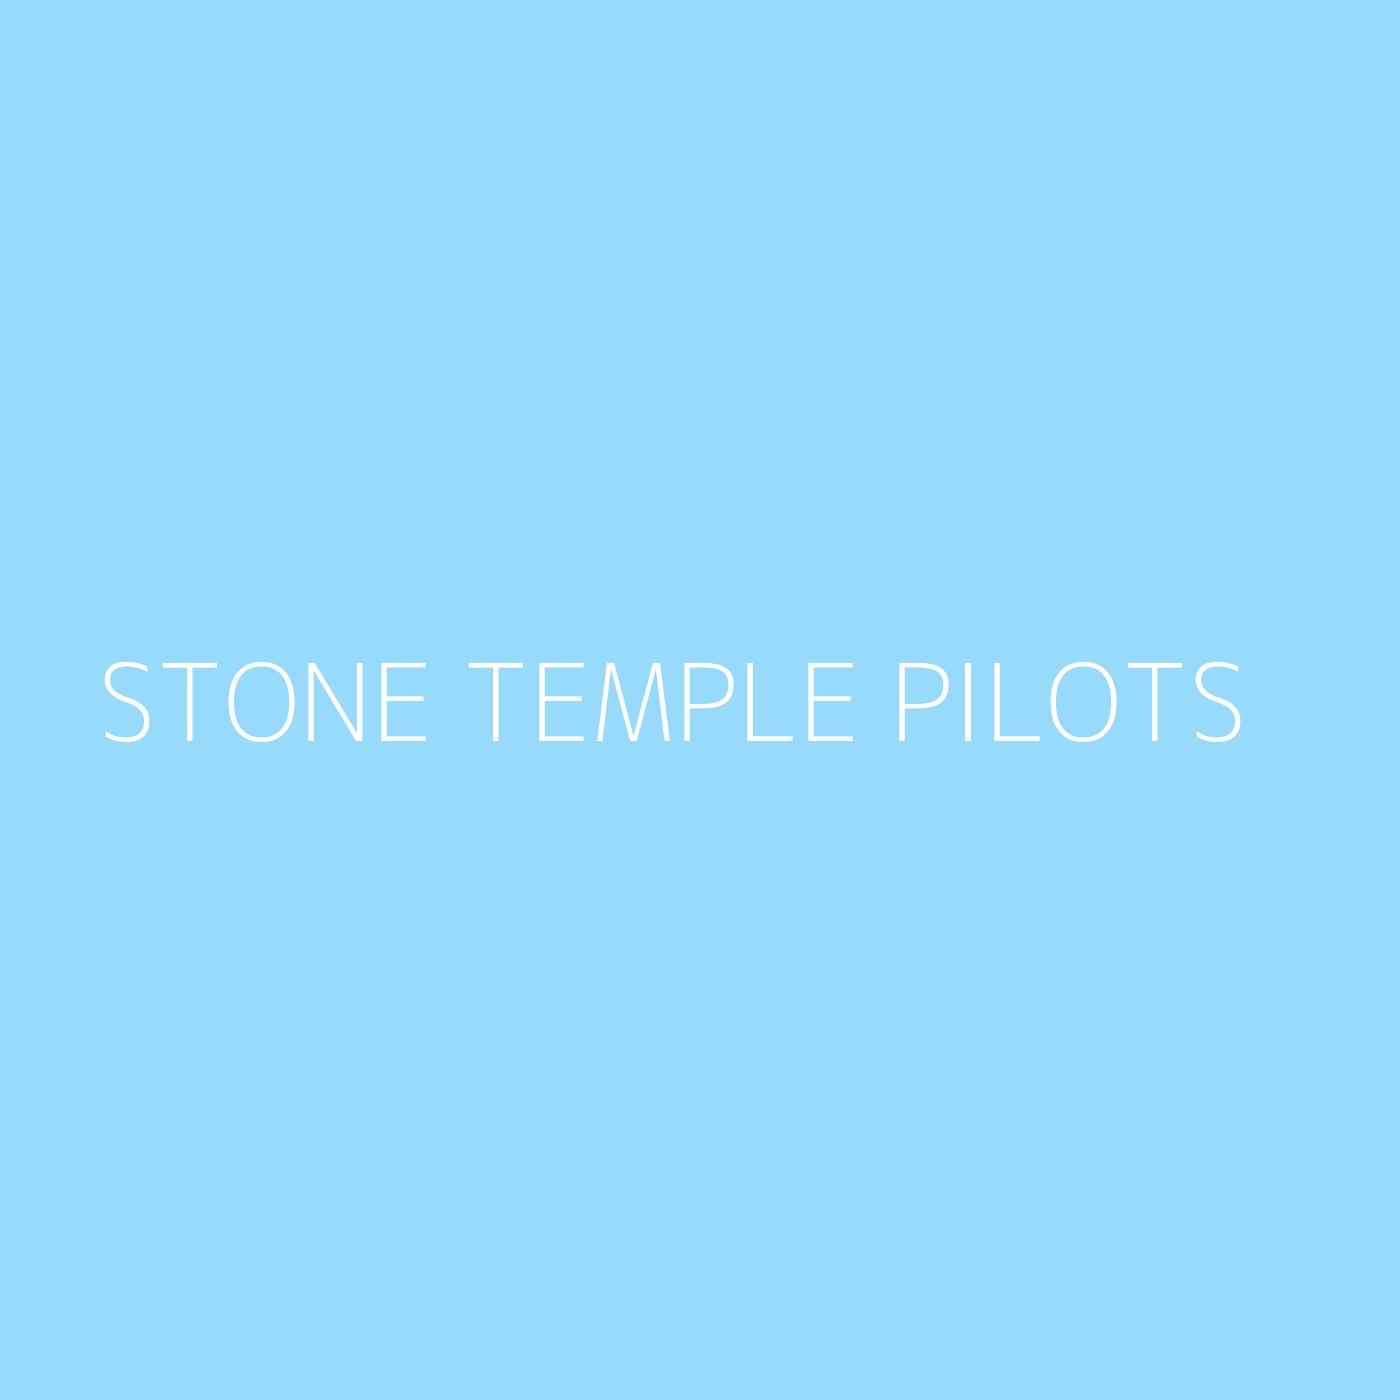 Stone Temple Pilots Playlist Artwork